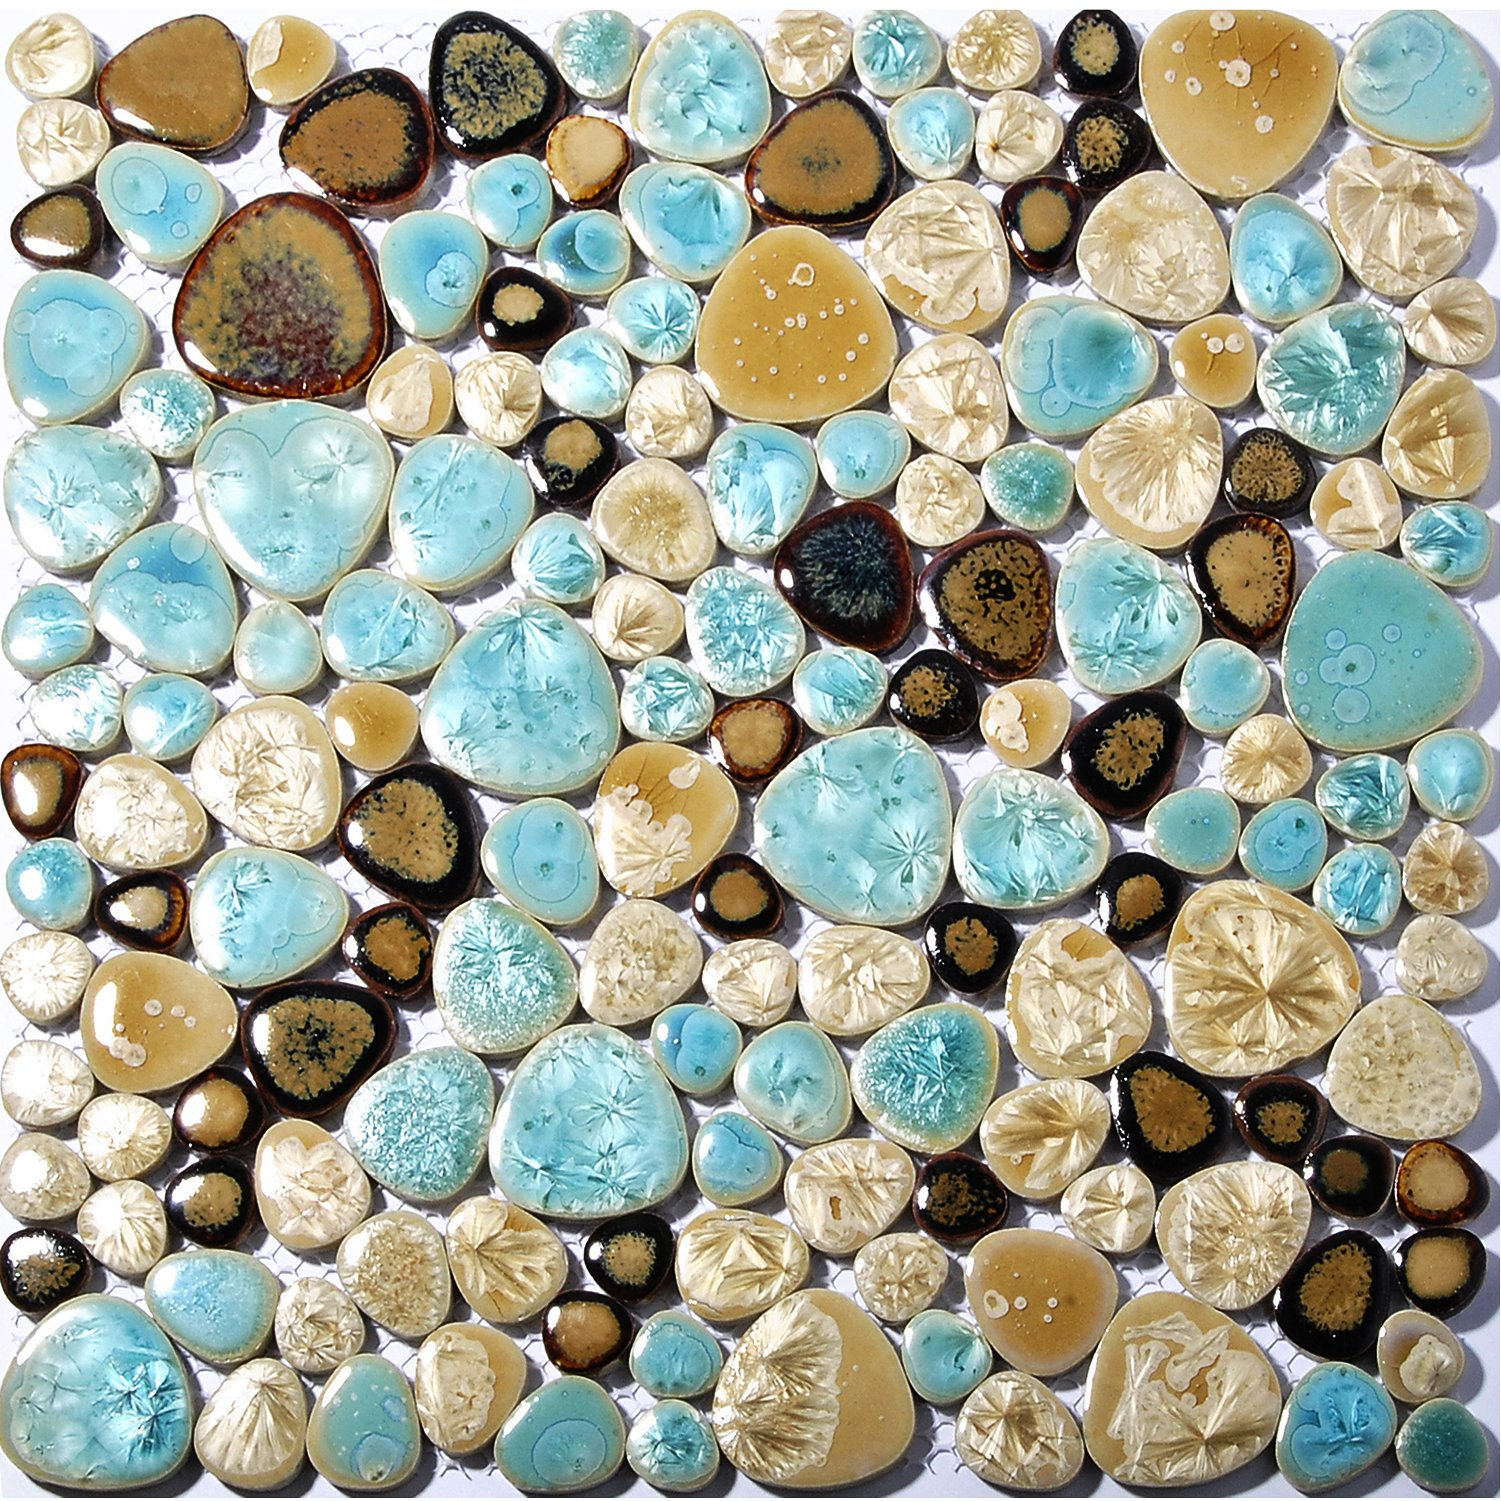 Pebble Porcelain Tile Fambe Turquoise Green Beige Shower Floor Pool Alley Tiles Mosaic TSTGPT005 (11 Square Feet)